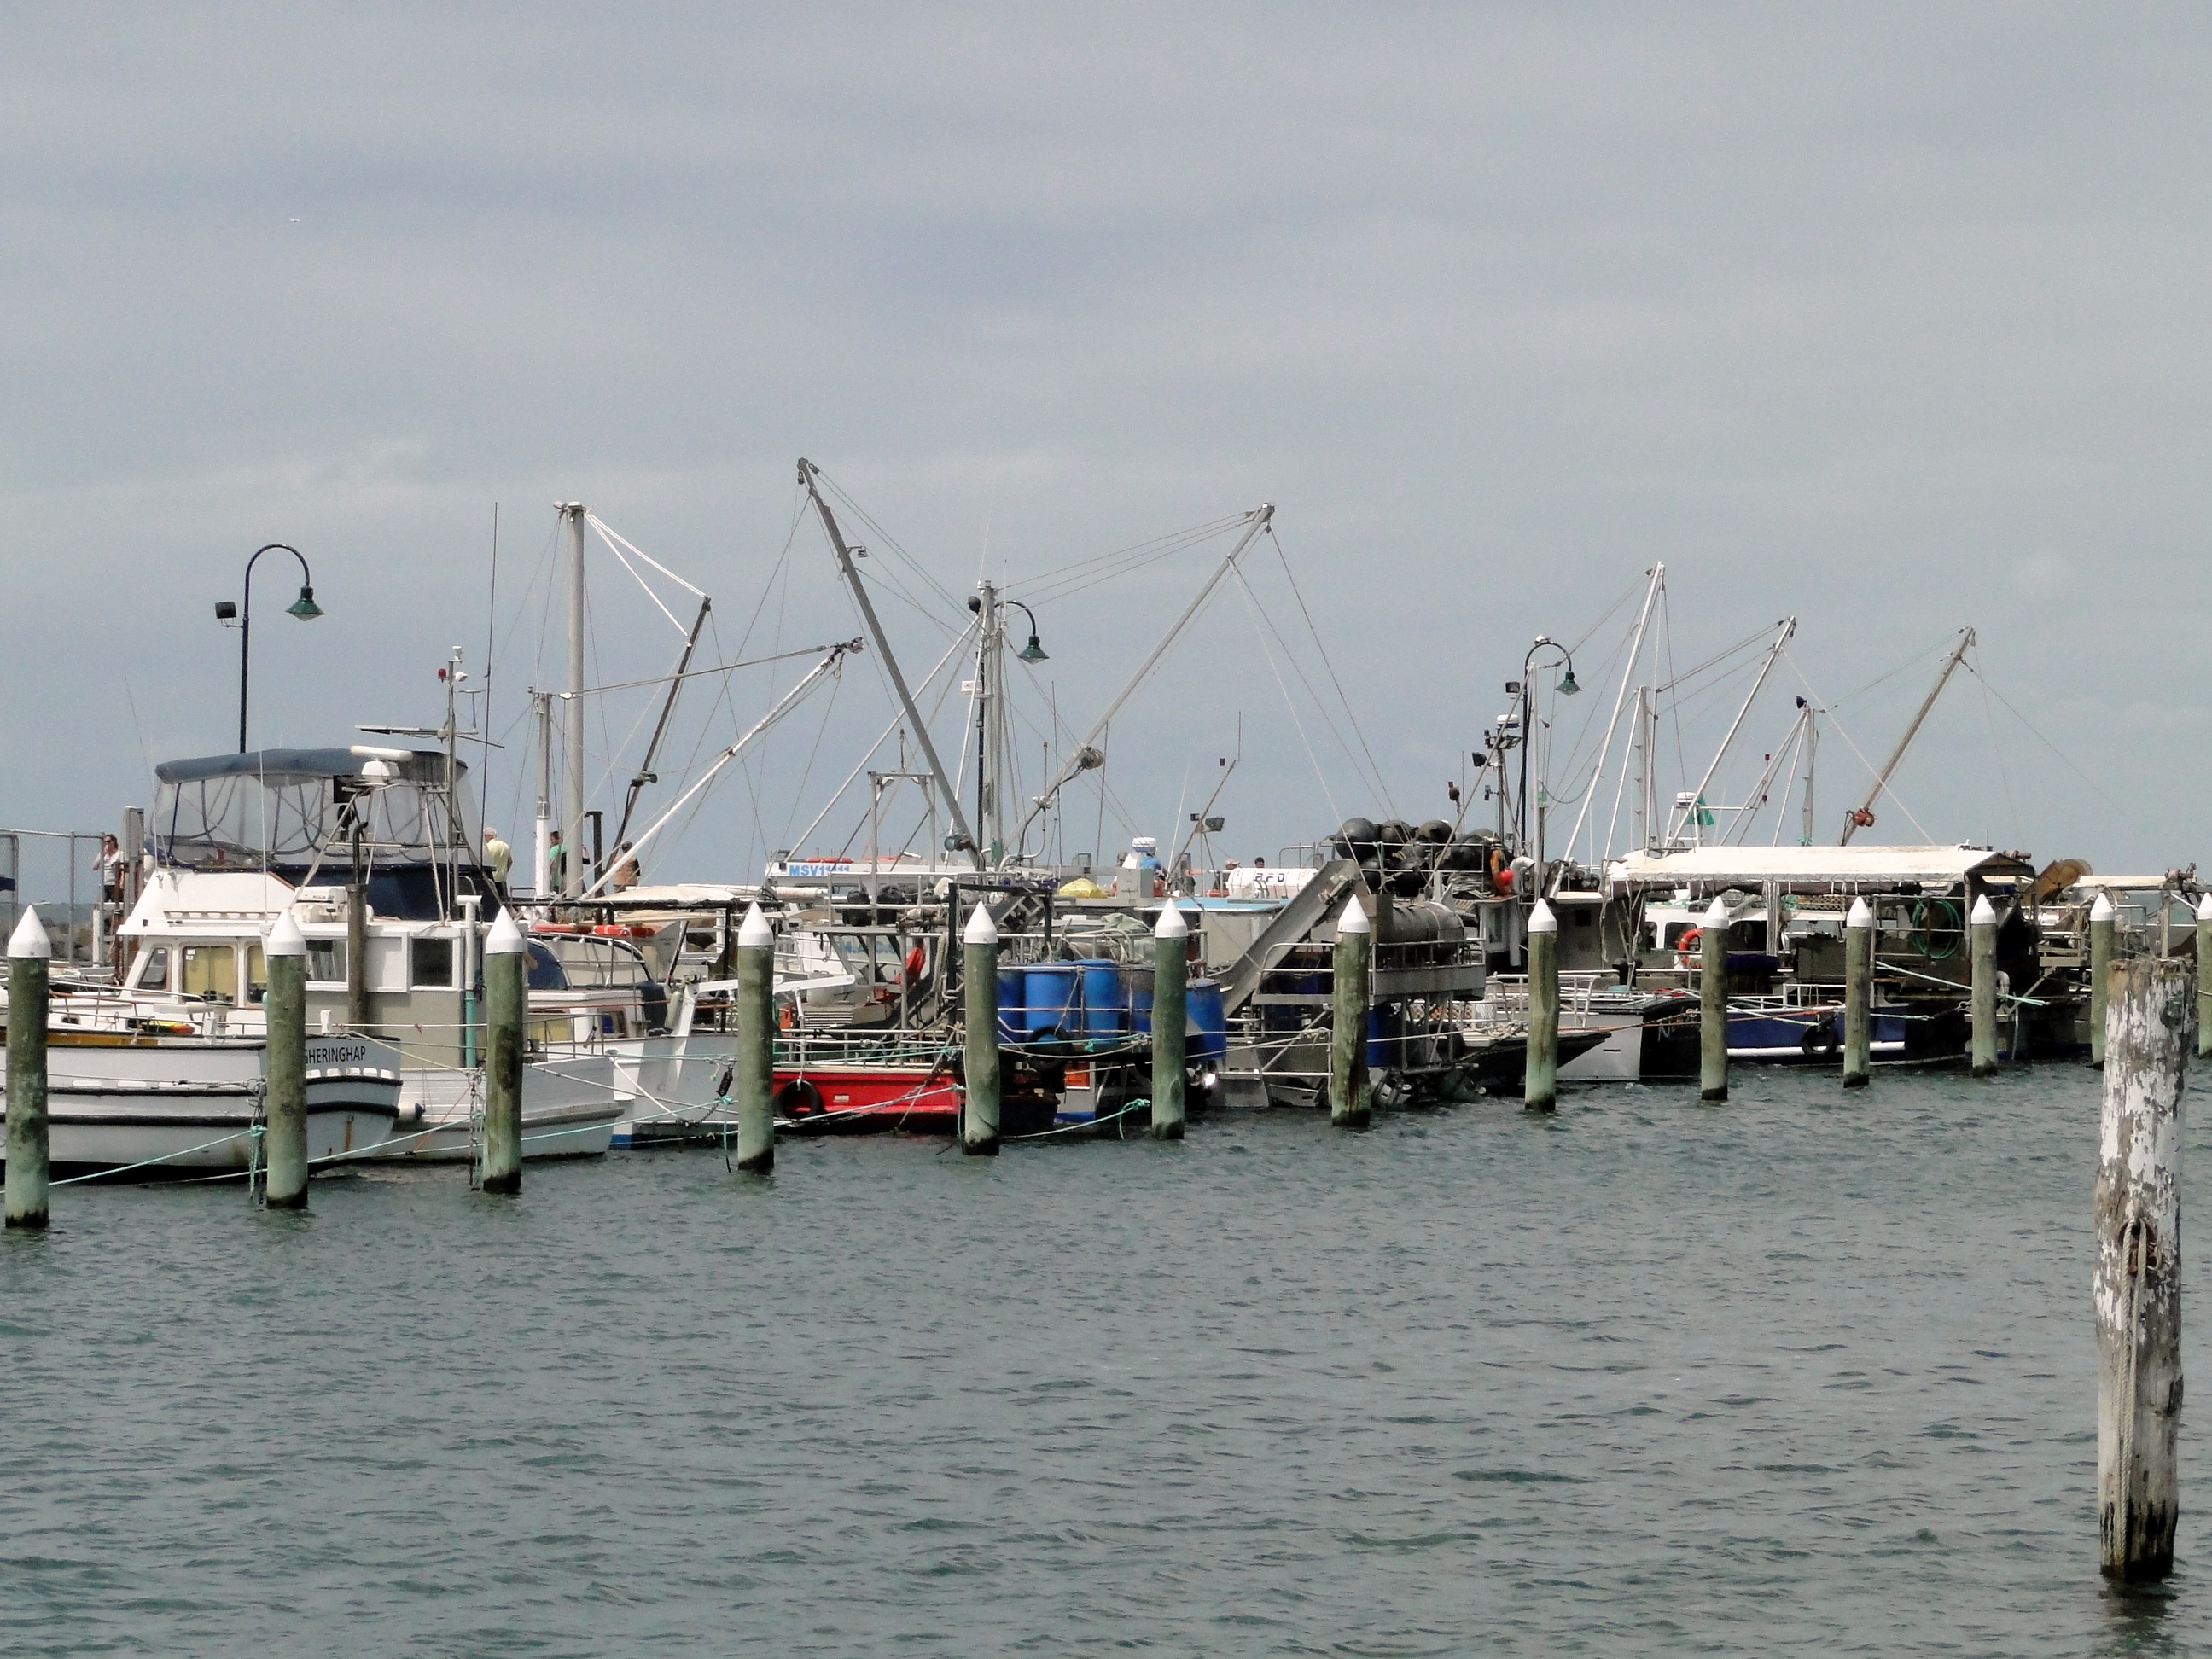 Portarlington Australia  City new picture : Portarlington pier and boats Wikimedia Commons